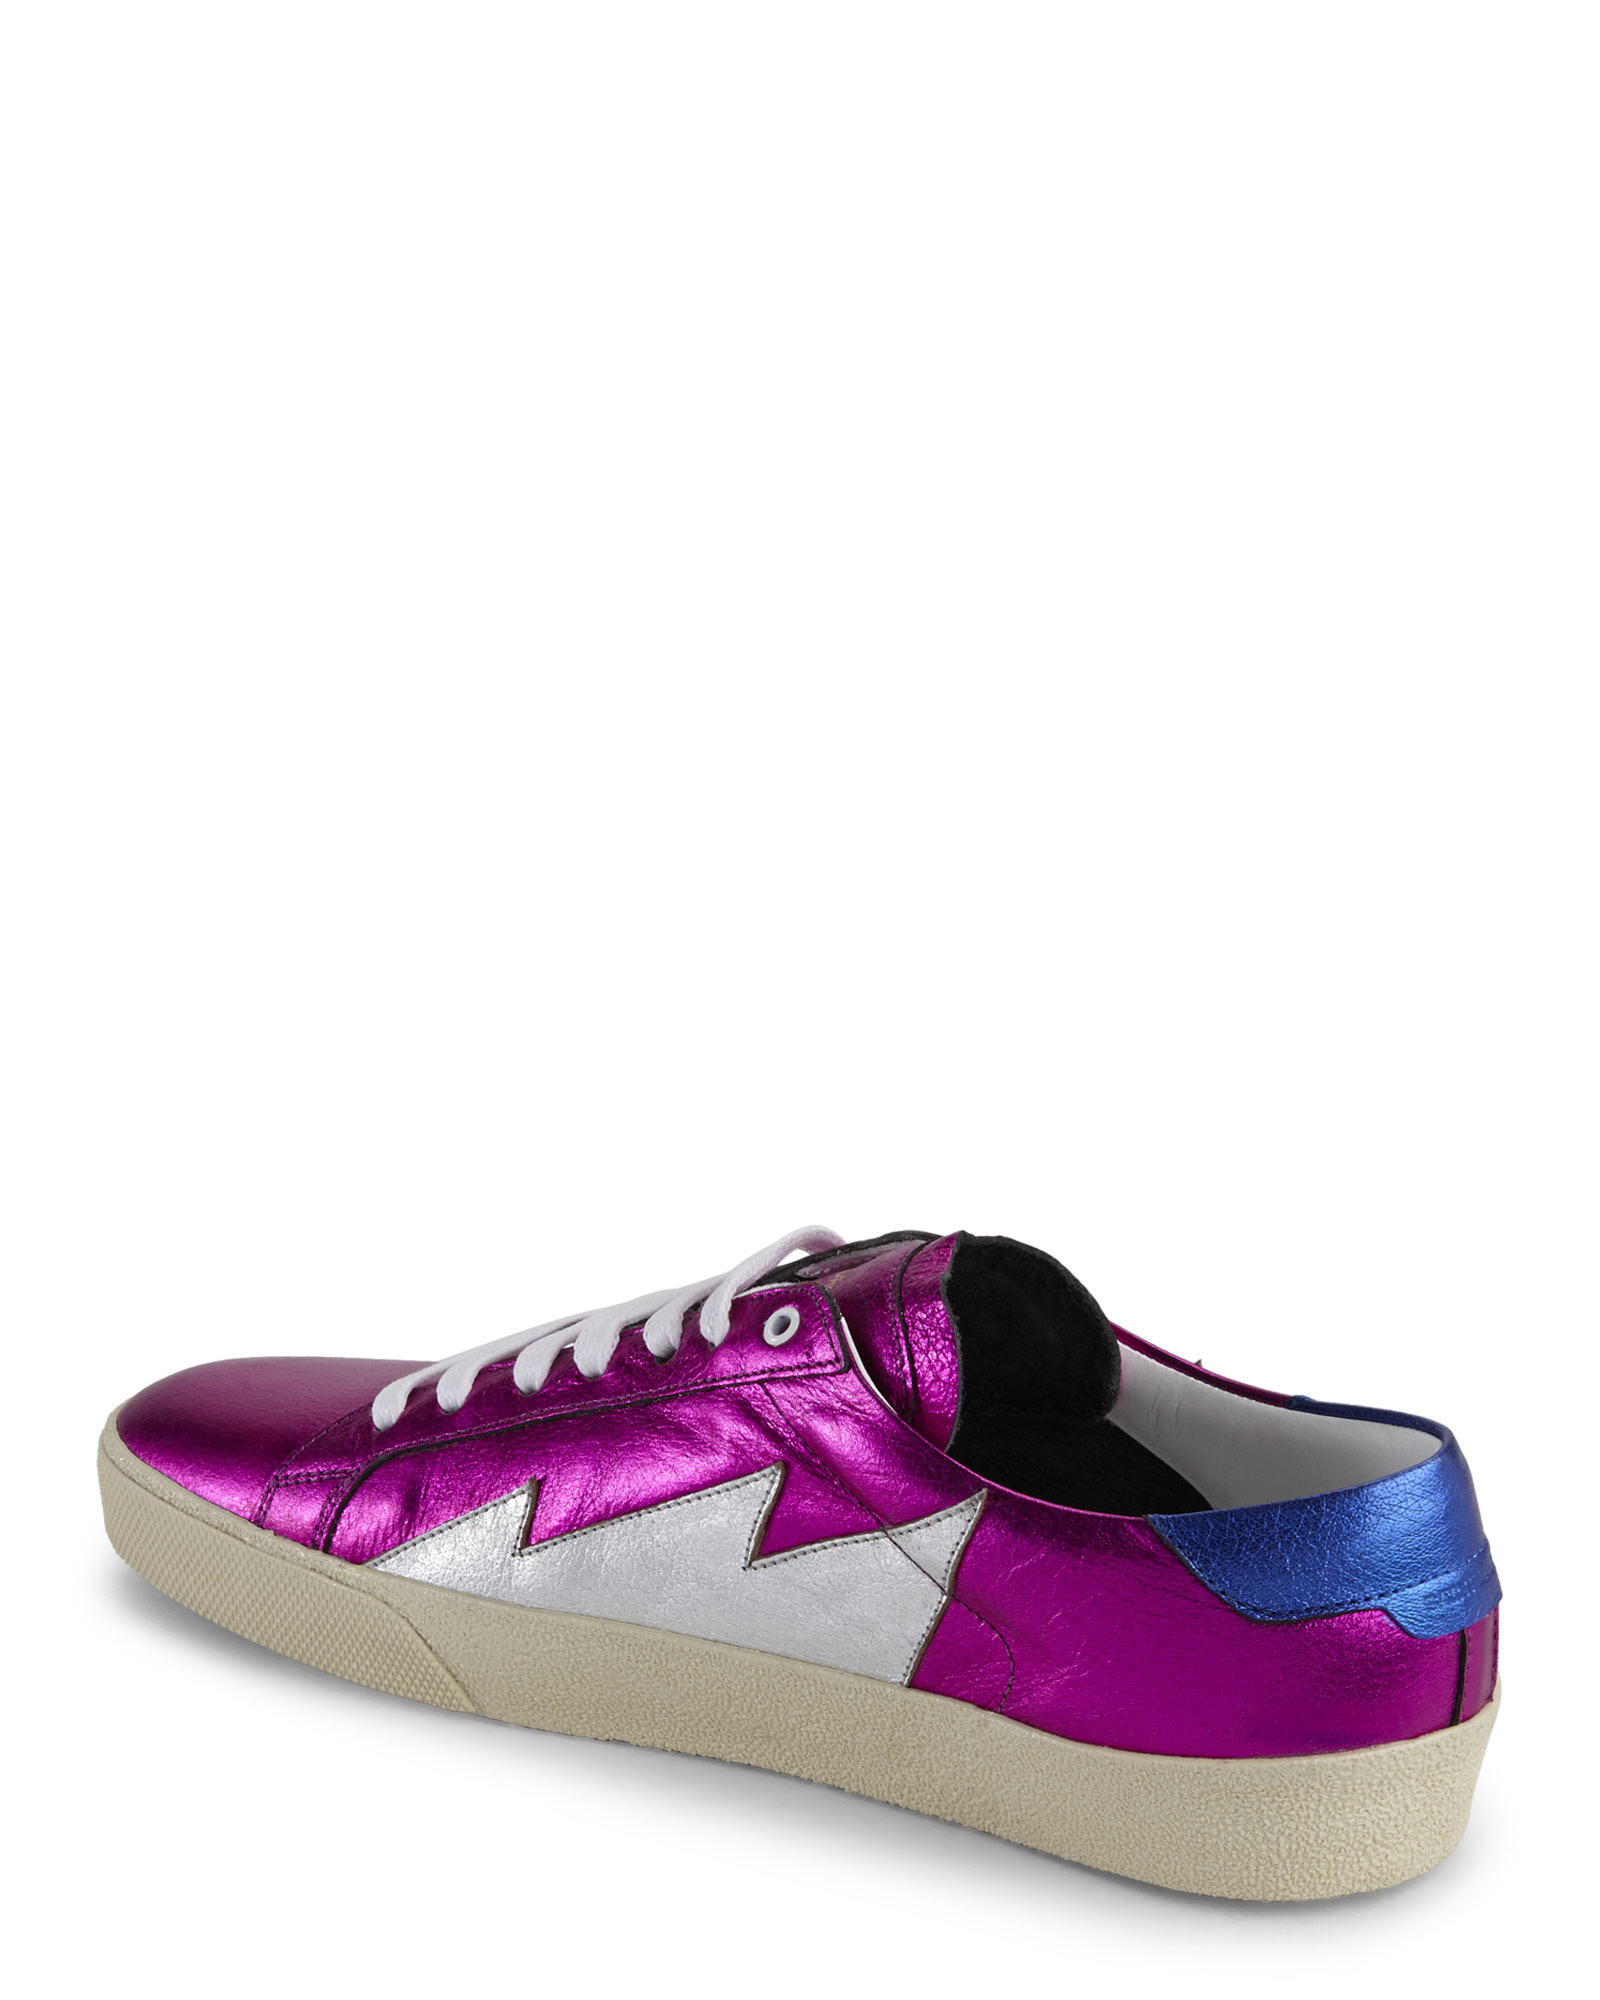 saint laurent court classic sneakers in purple lyst. Black Bedroom Furniture Sets. Home Design Ideas